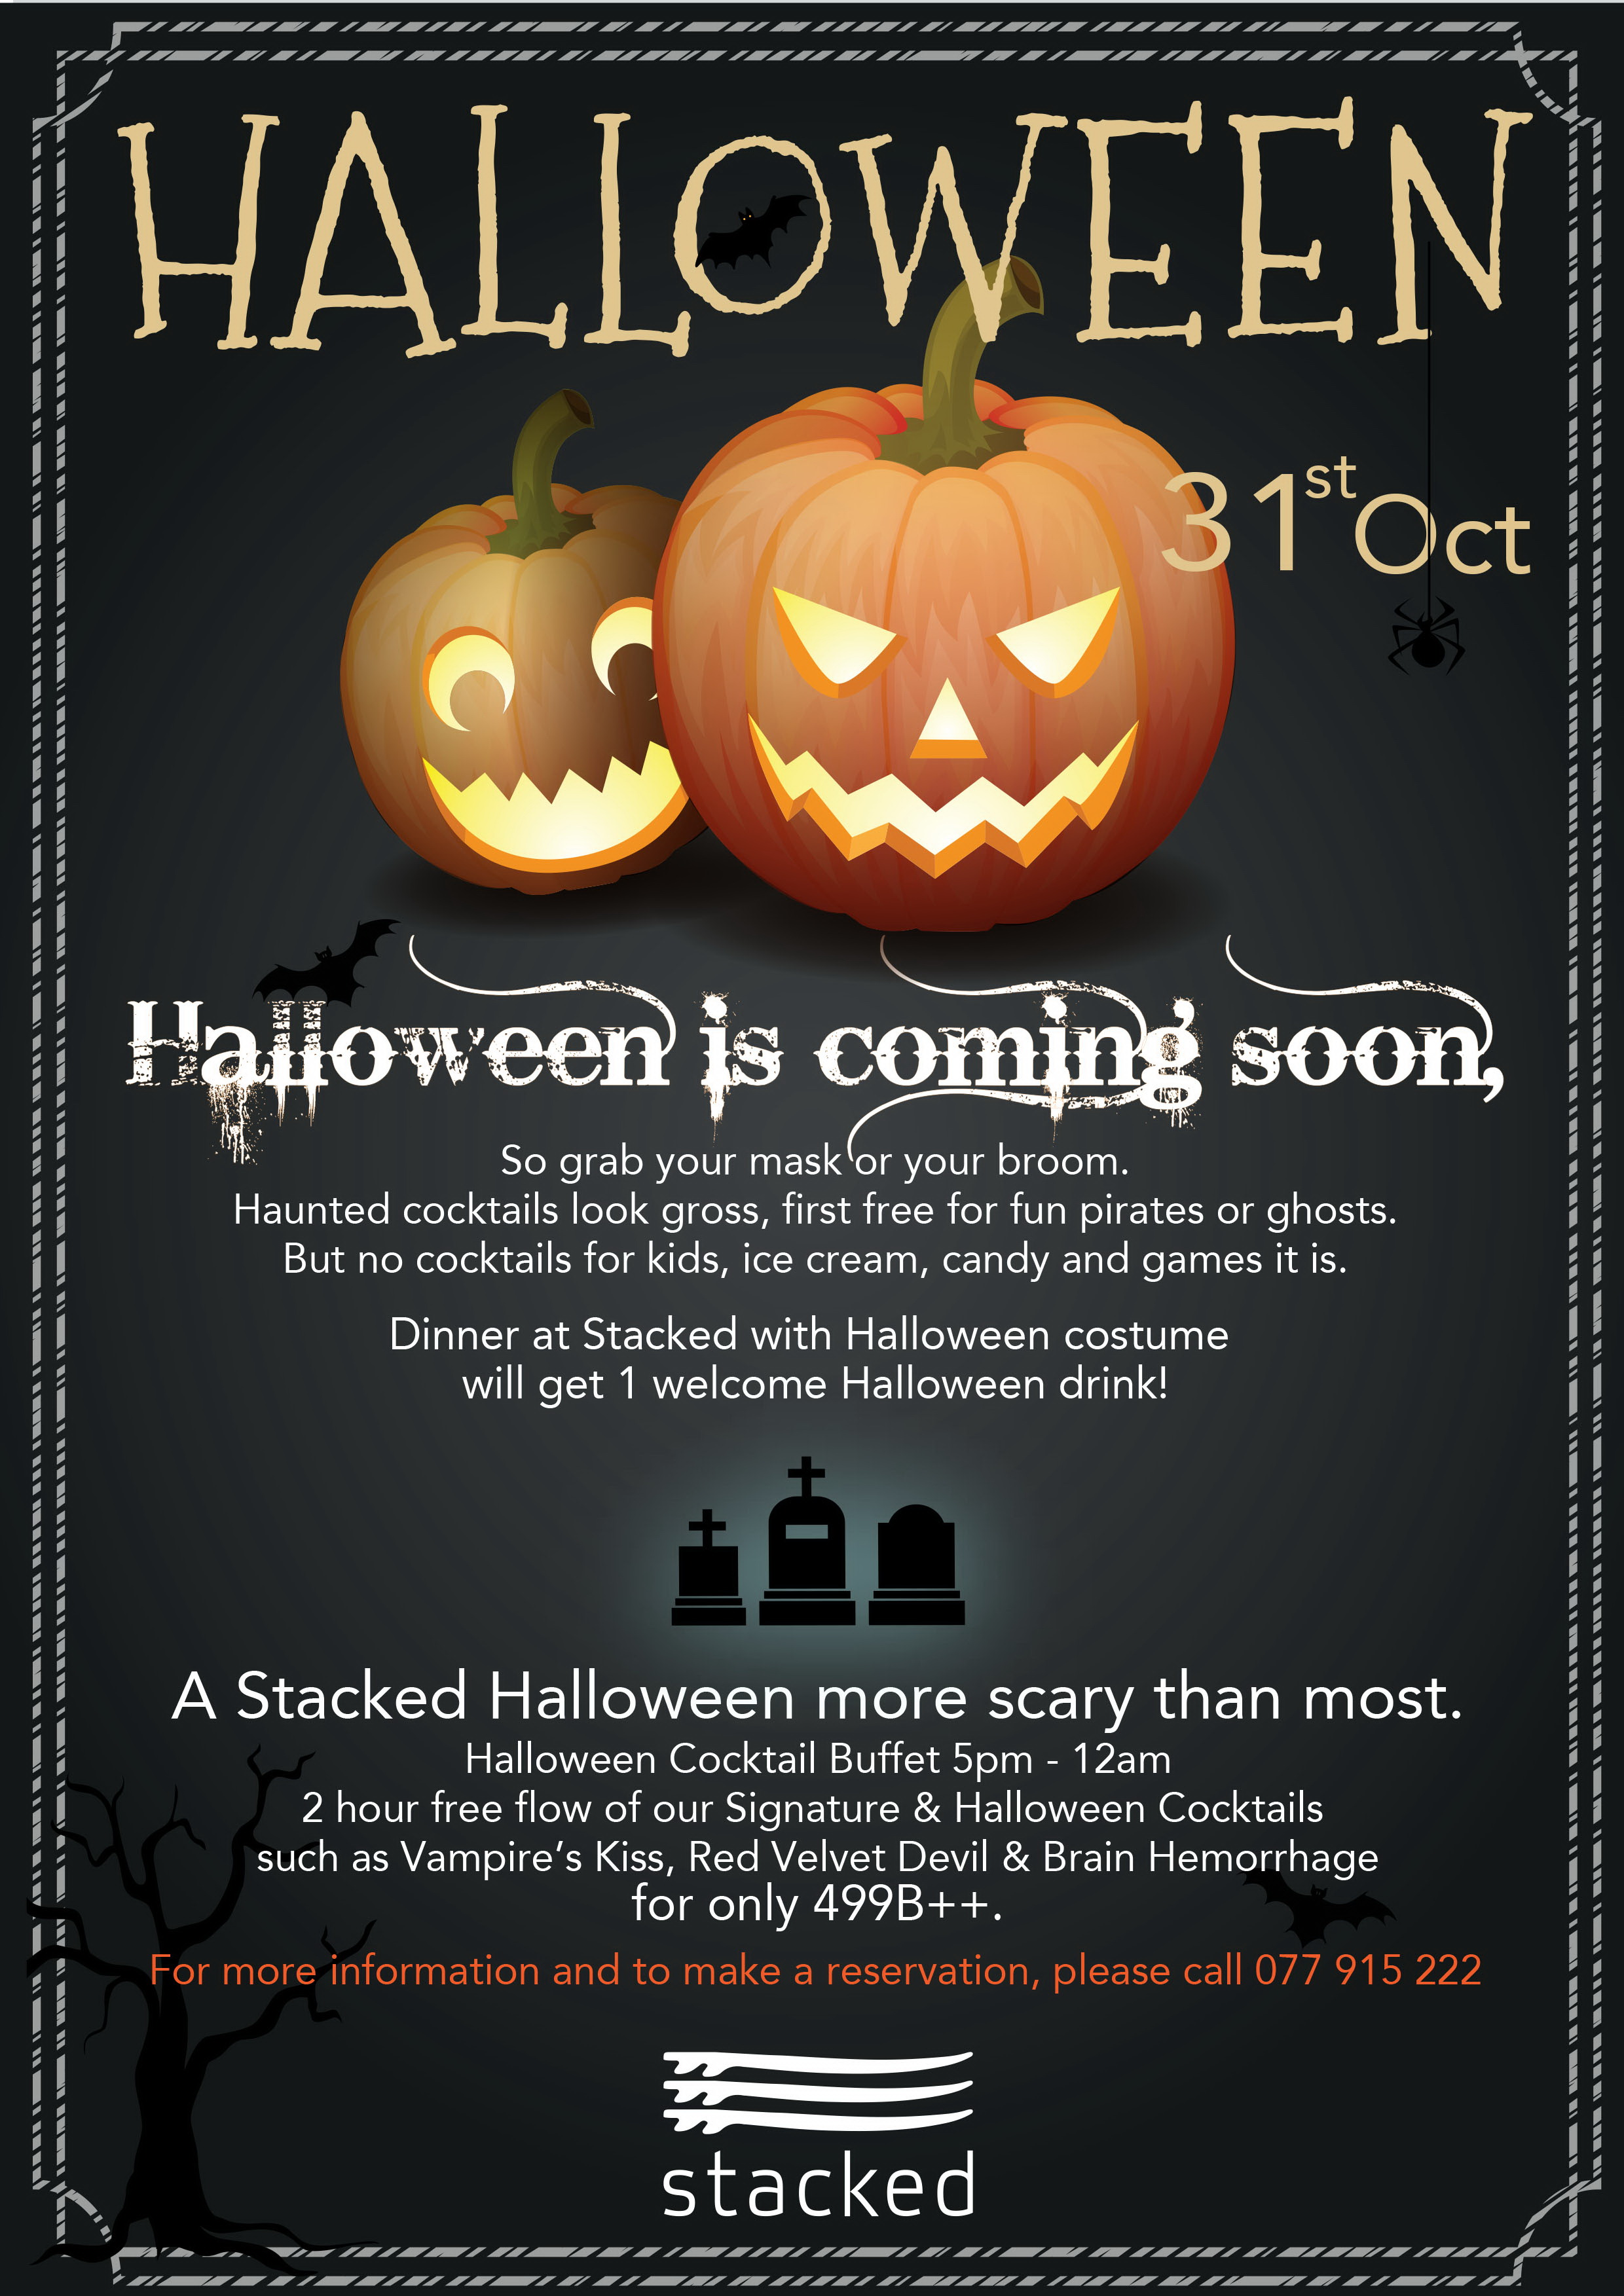 Halloween at Stacked | Samui Times